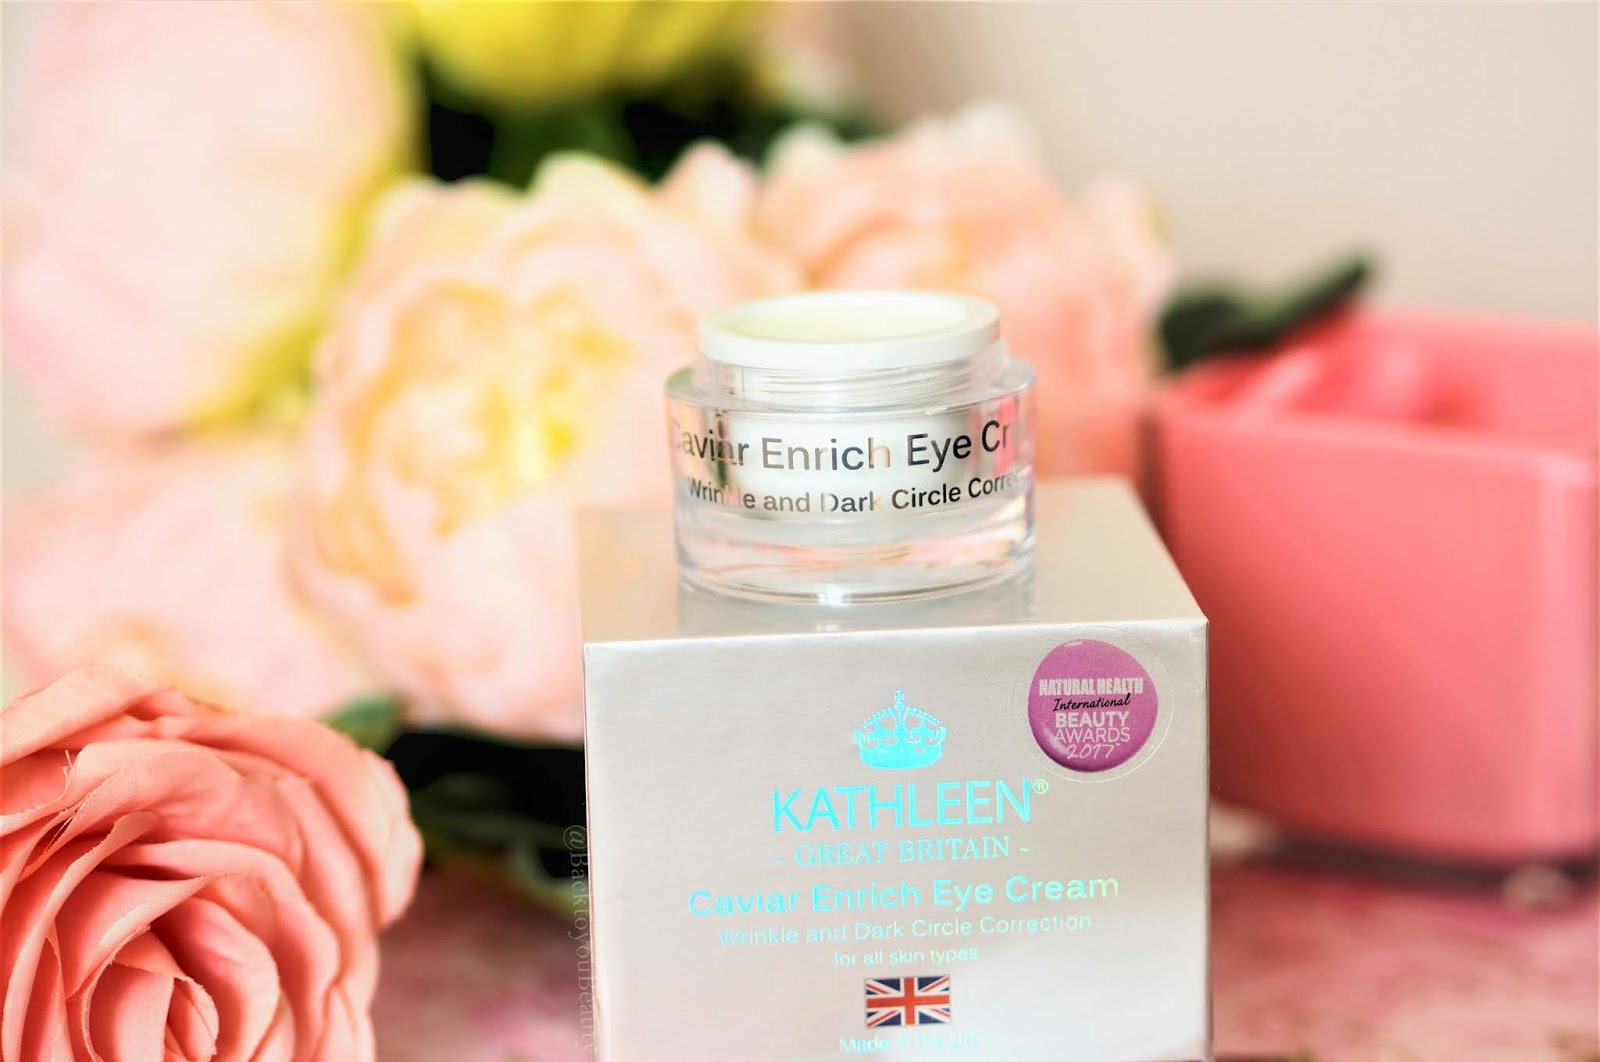 Kathleen Caviar Eye Cream